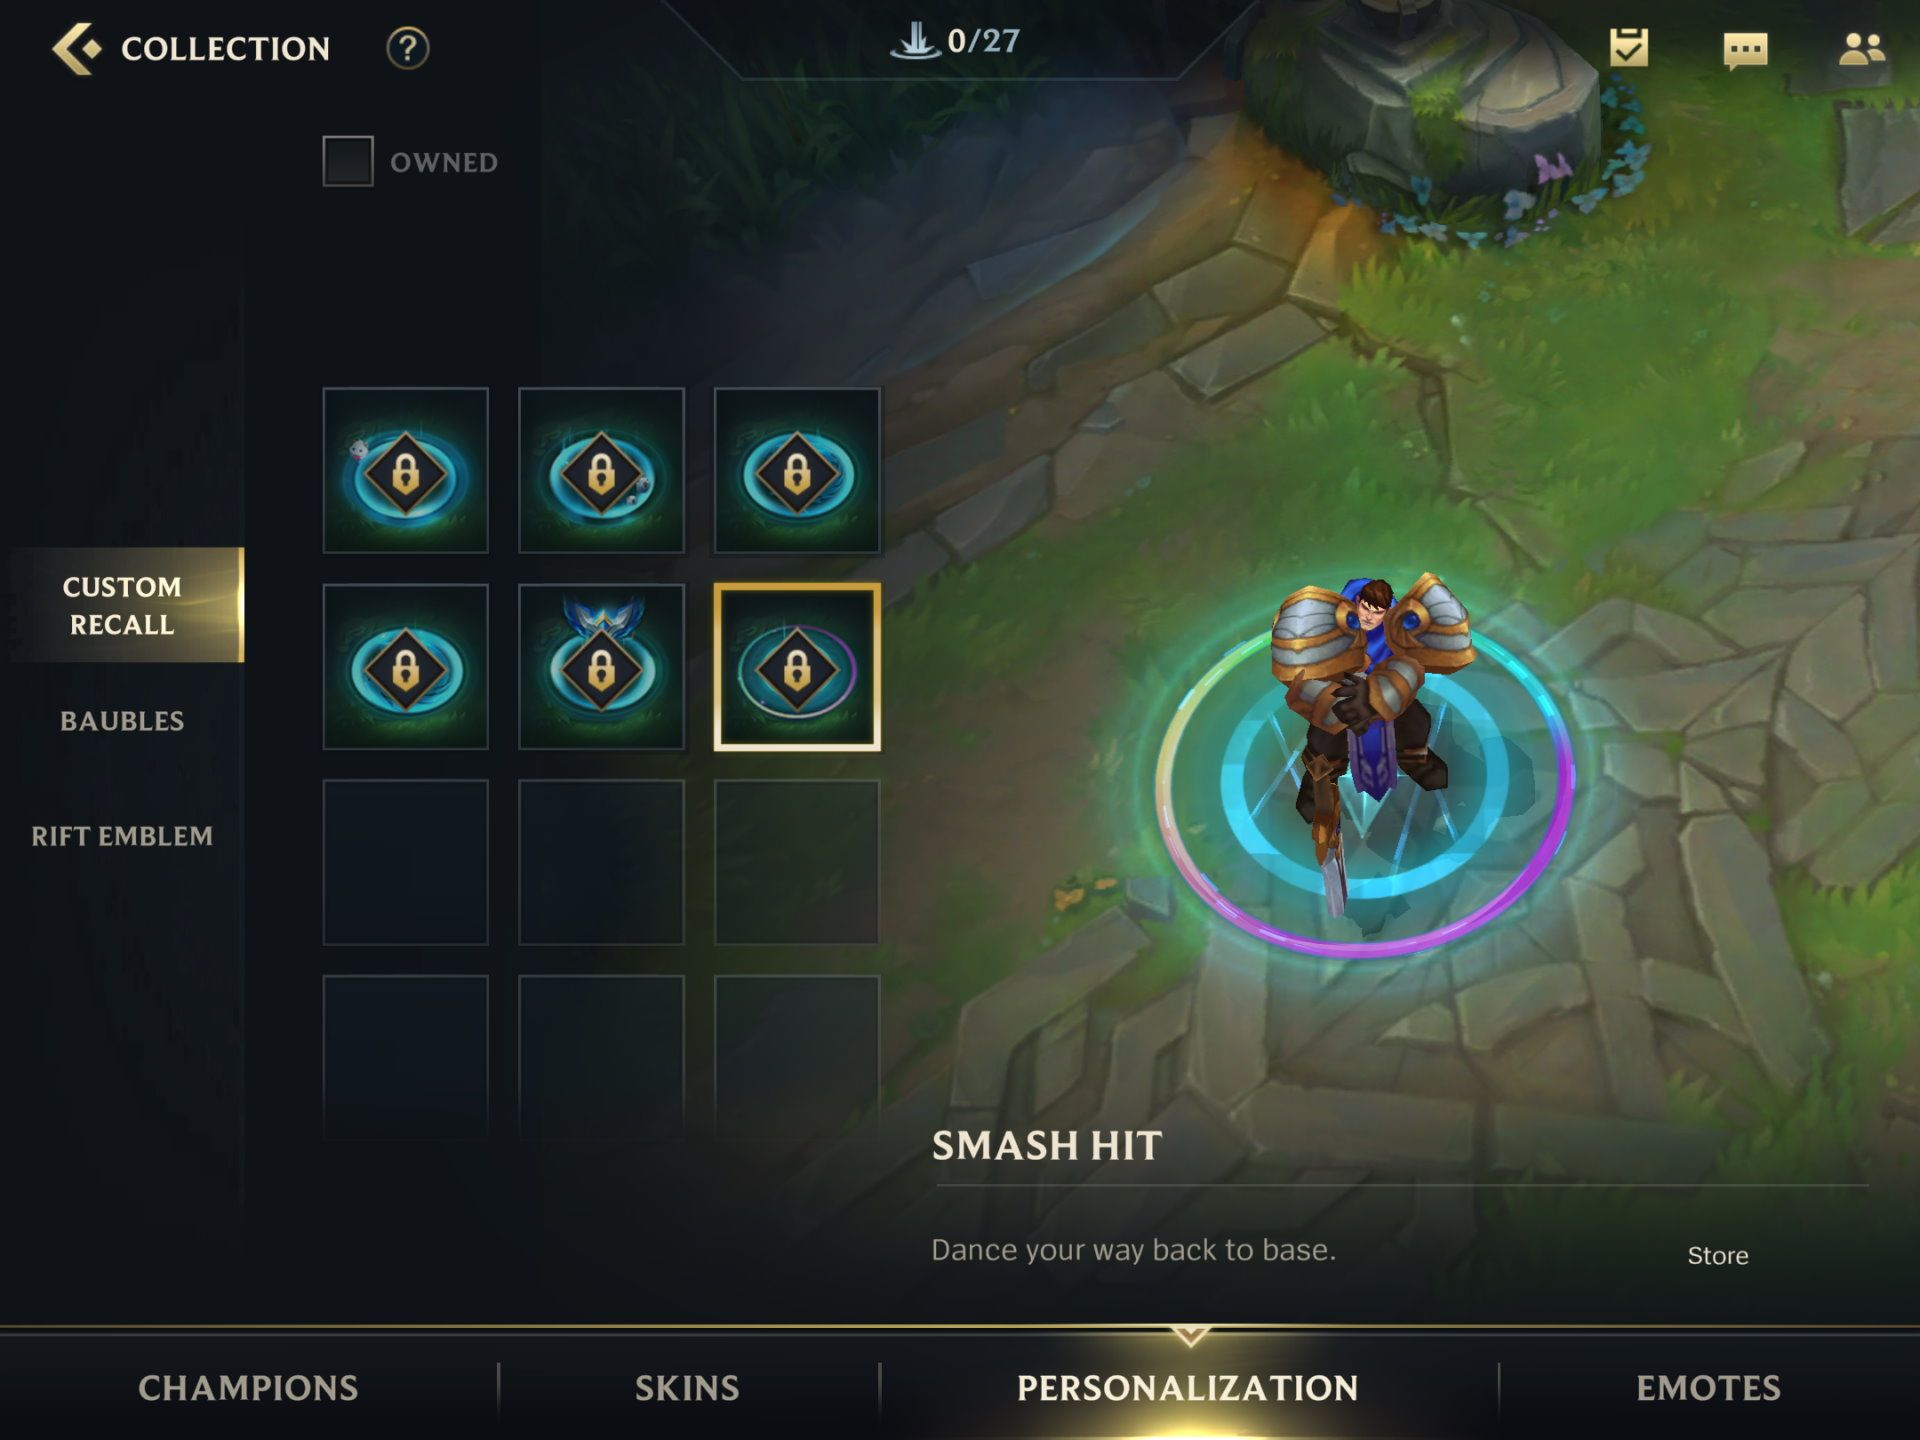 Custom Recalls in the Shop in League of Legends Wild Rift